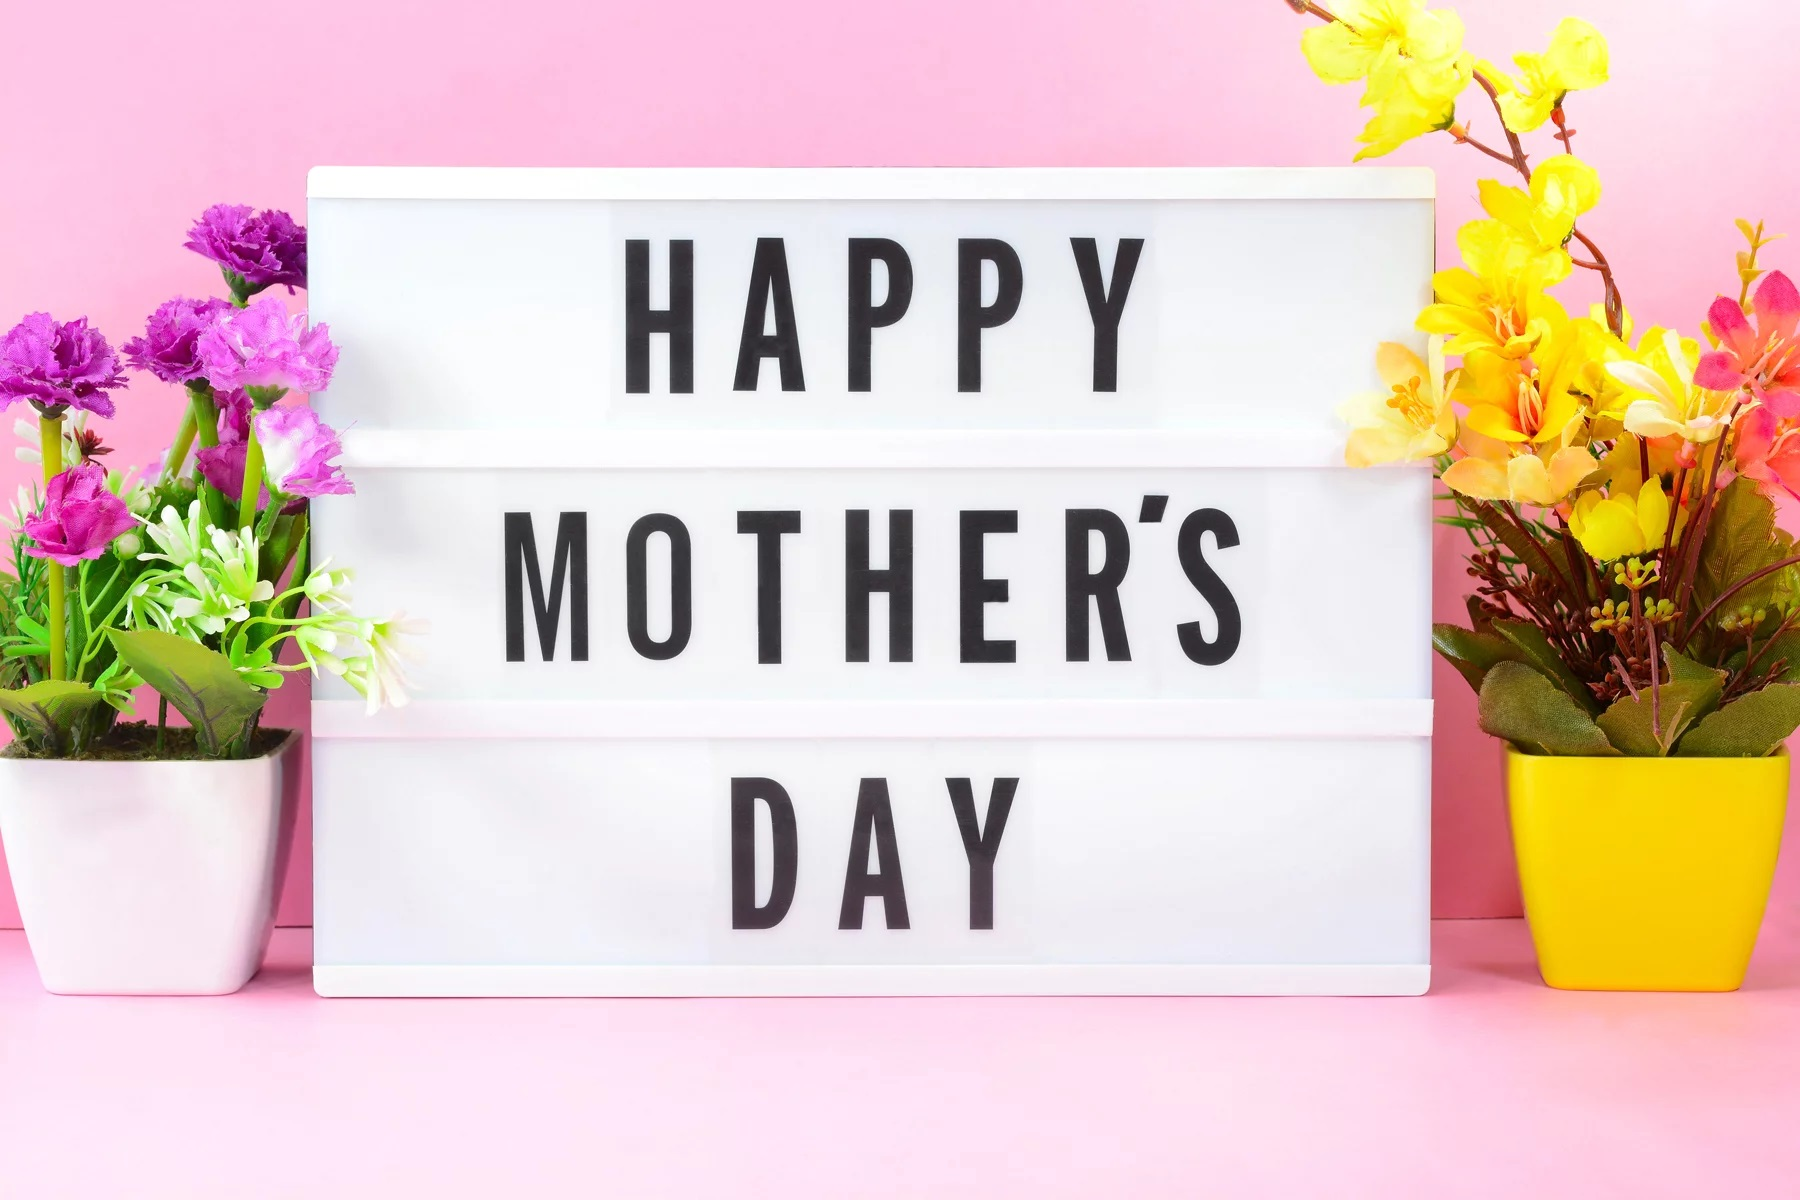 Happy Mother's Day Qoutes You Can Share